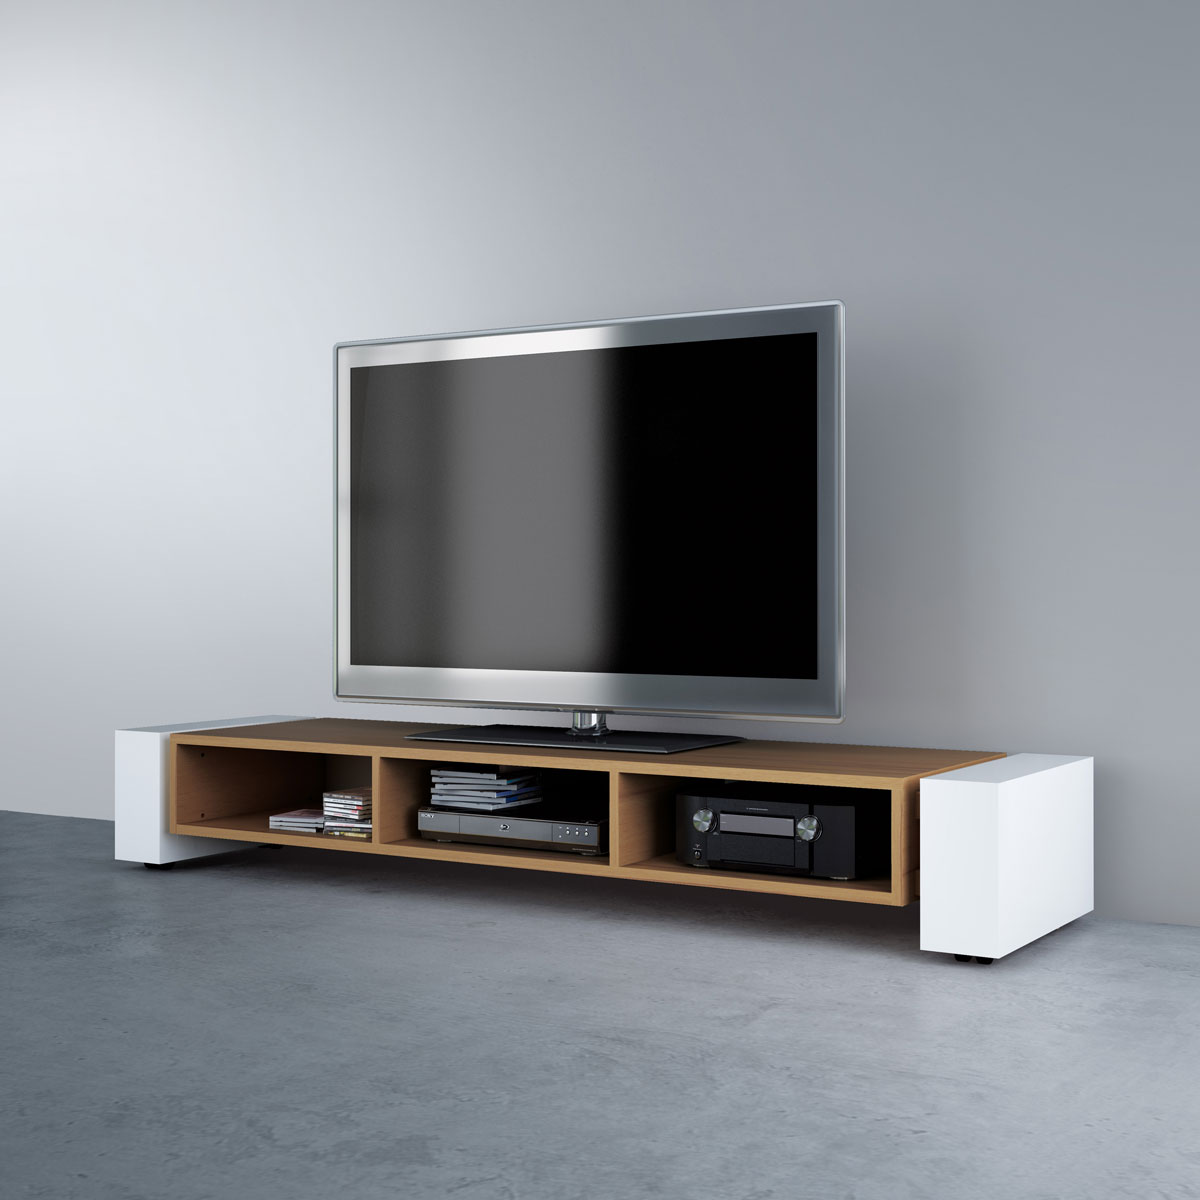 schnepel lowboard archive tv m bel und hifi m bel guide. Black Bedroom Furniture Sets. Home Design Ideas